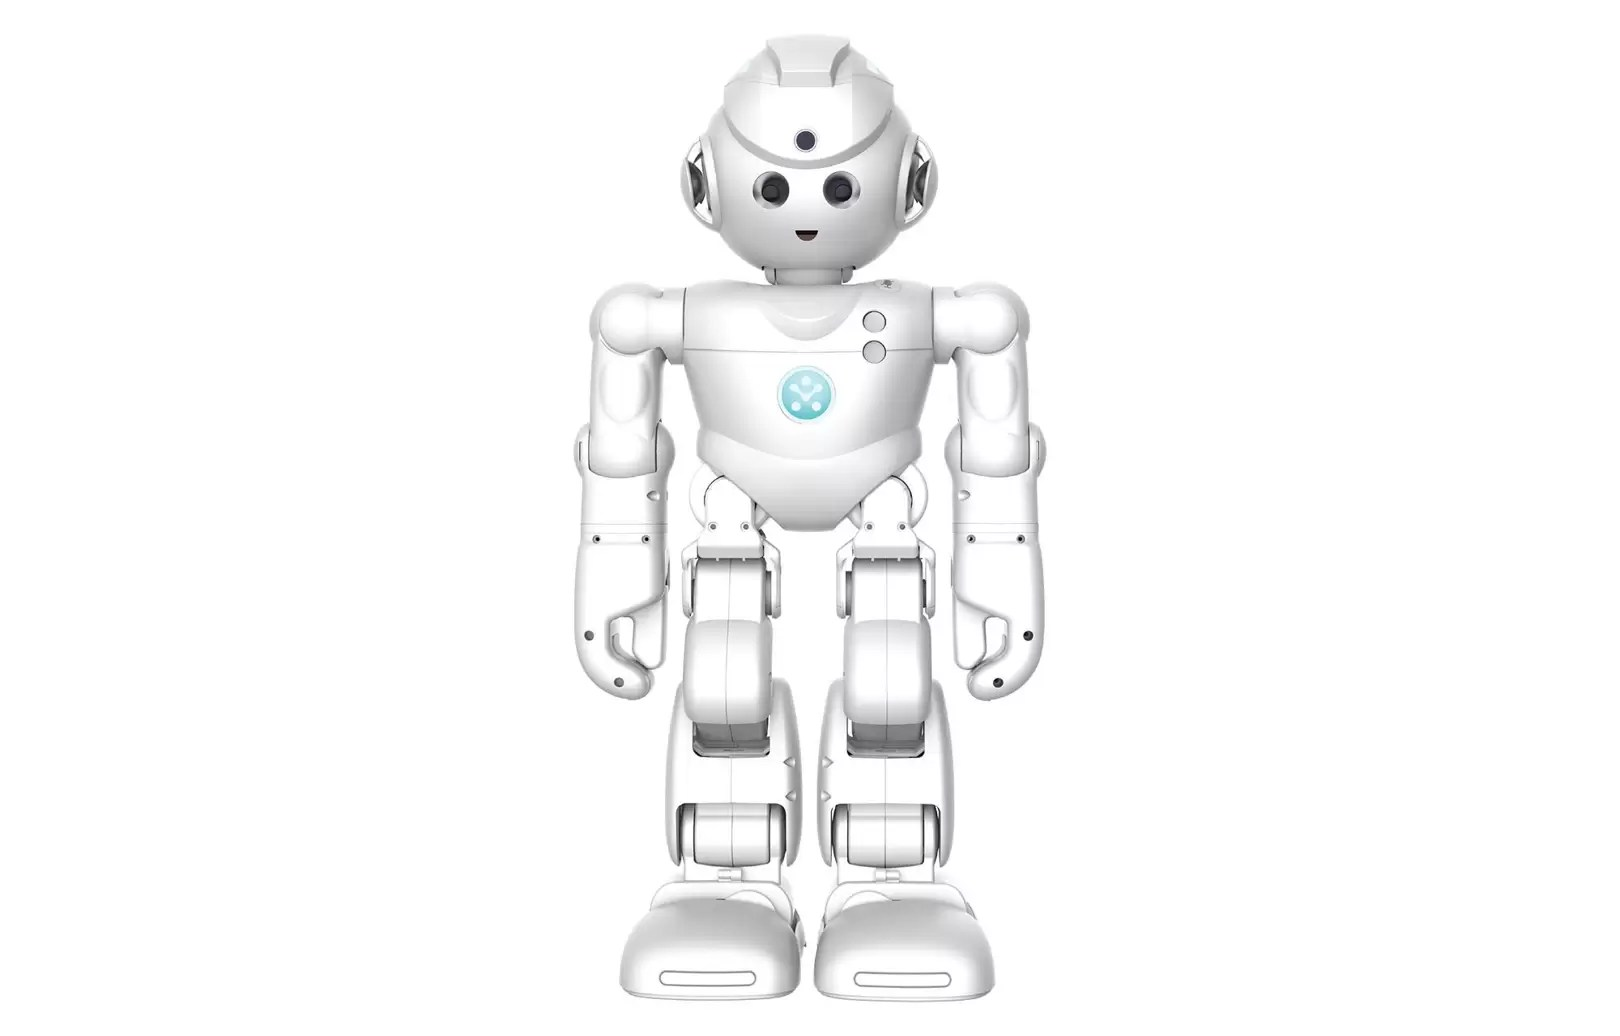 Robots for the home: Ubtech unveils Lionbot, Lynx and